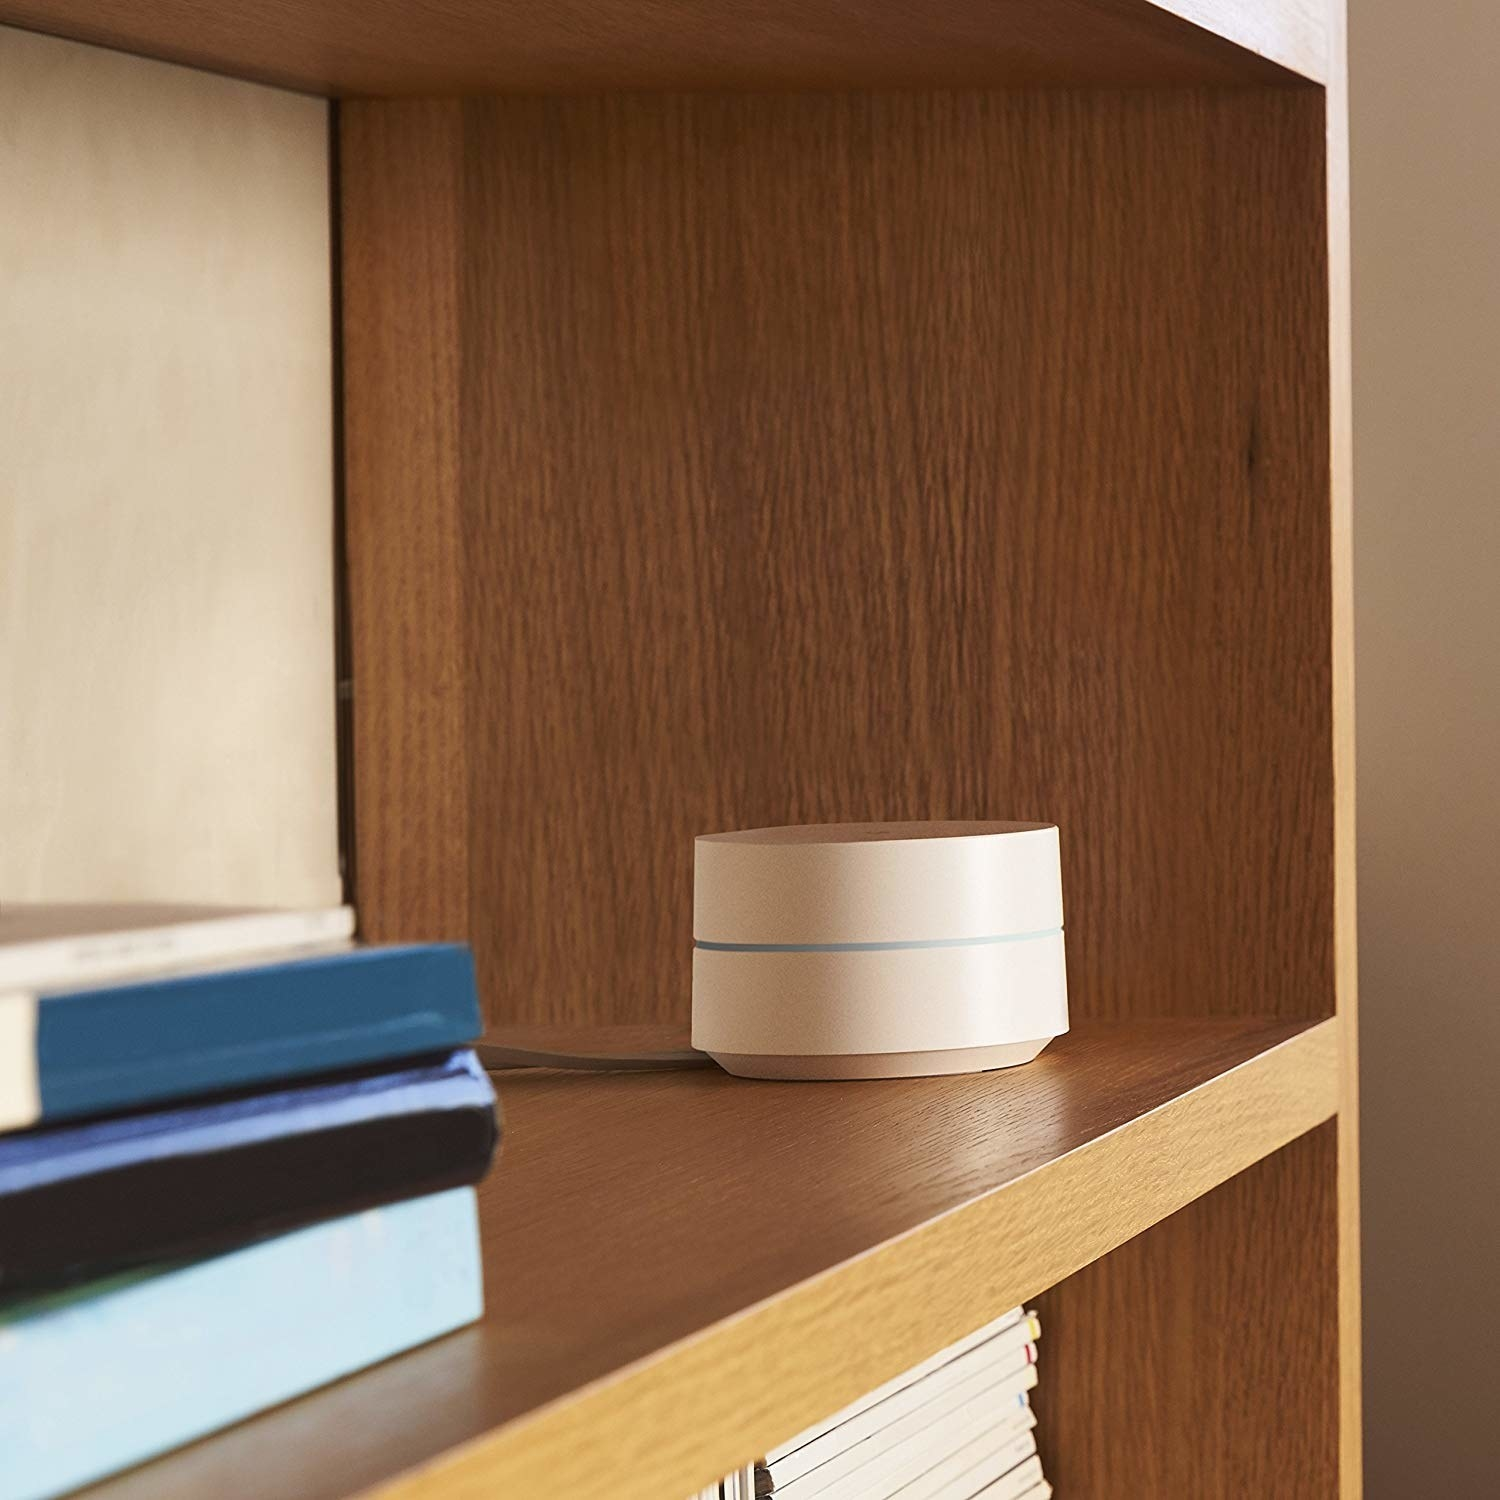 The small white circular system sitting on a shelf